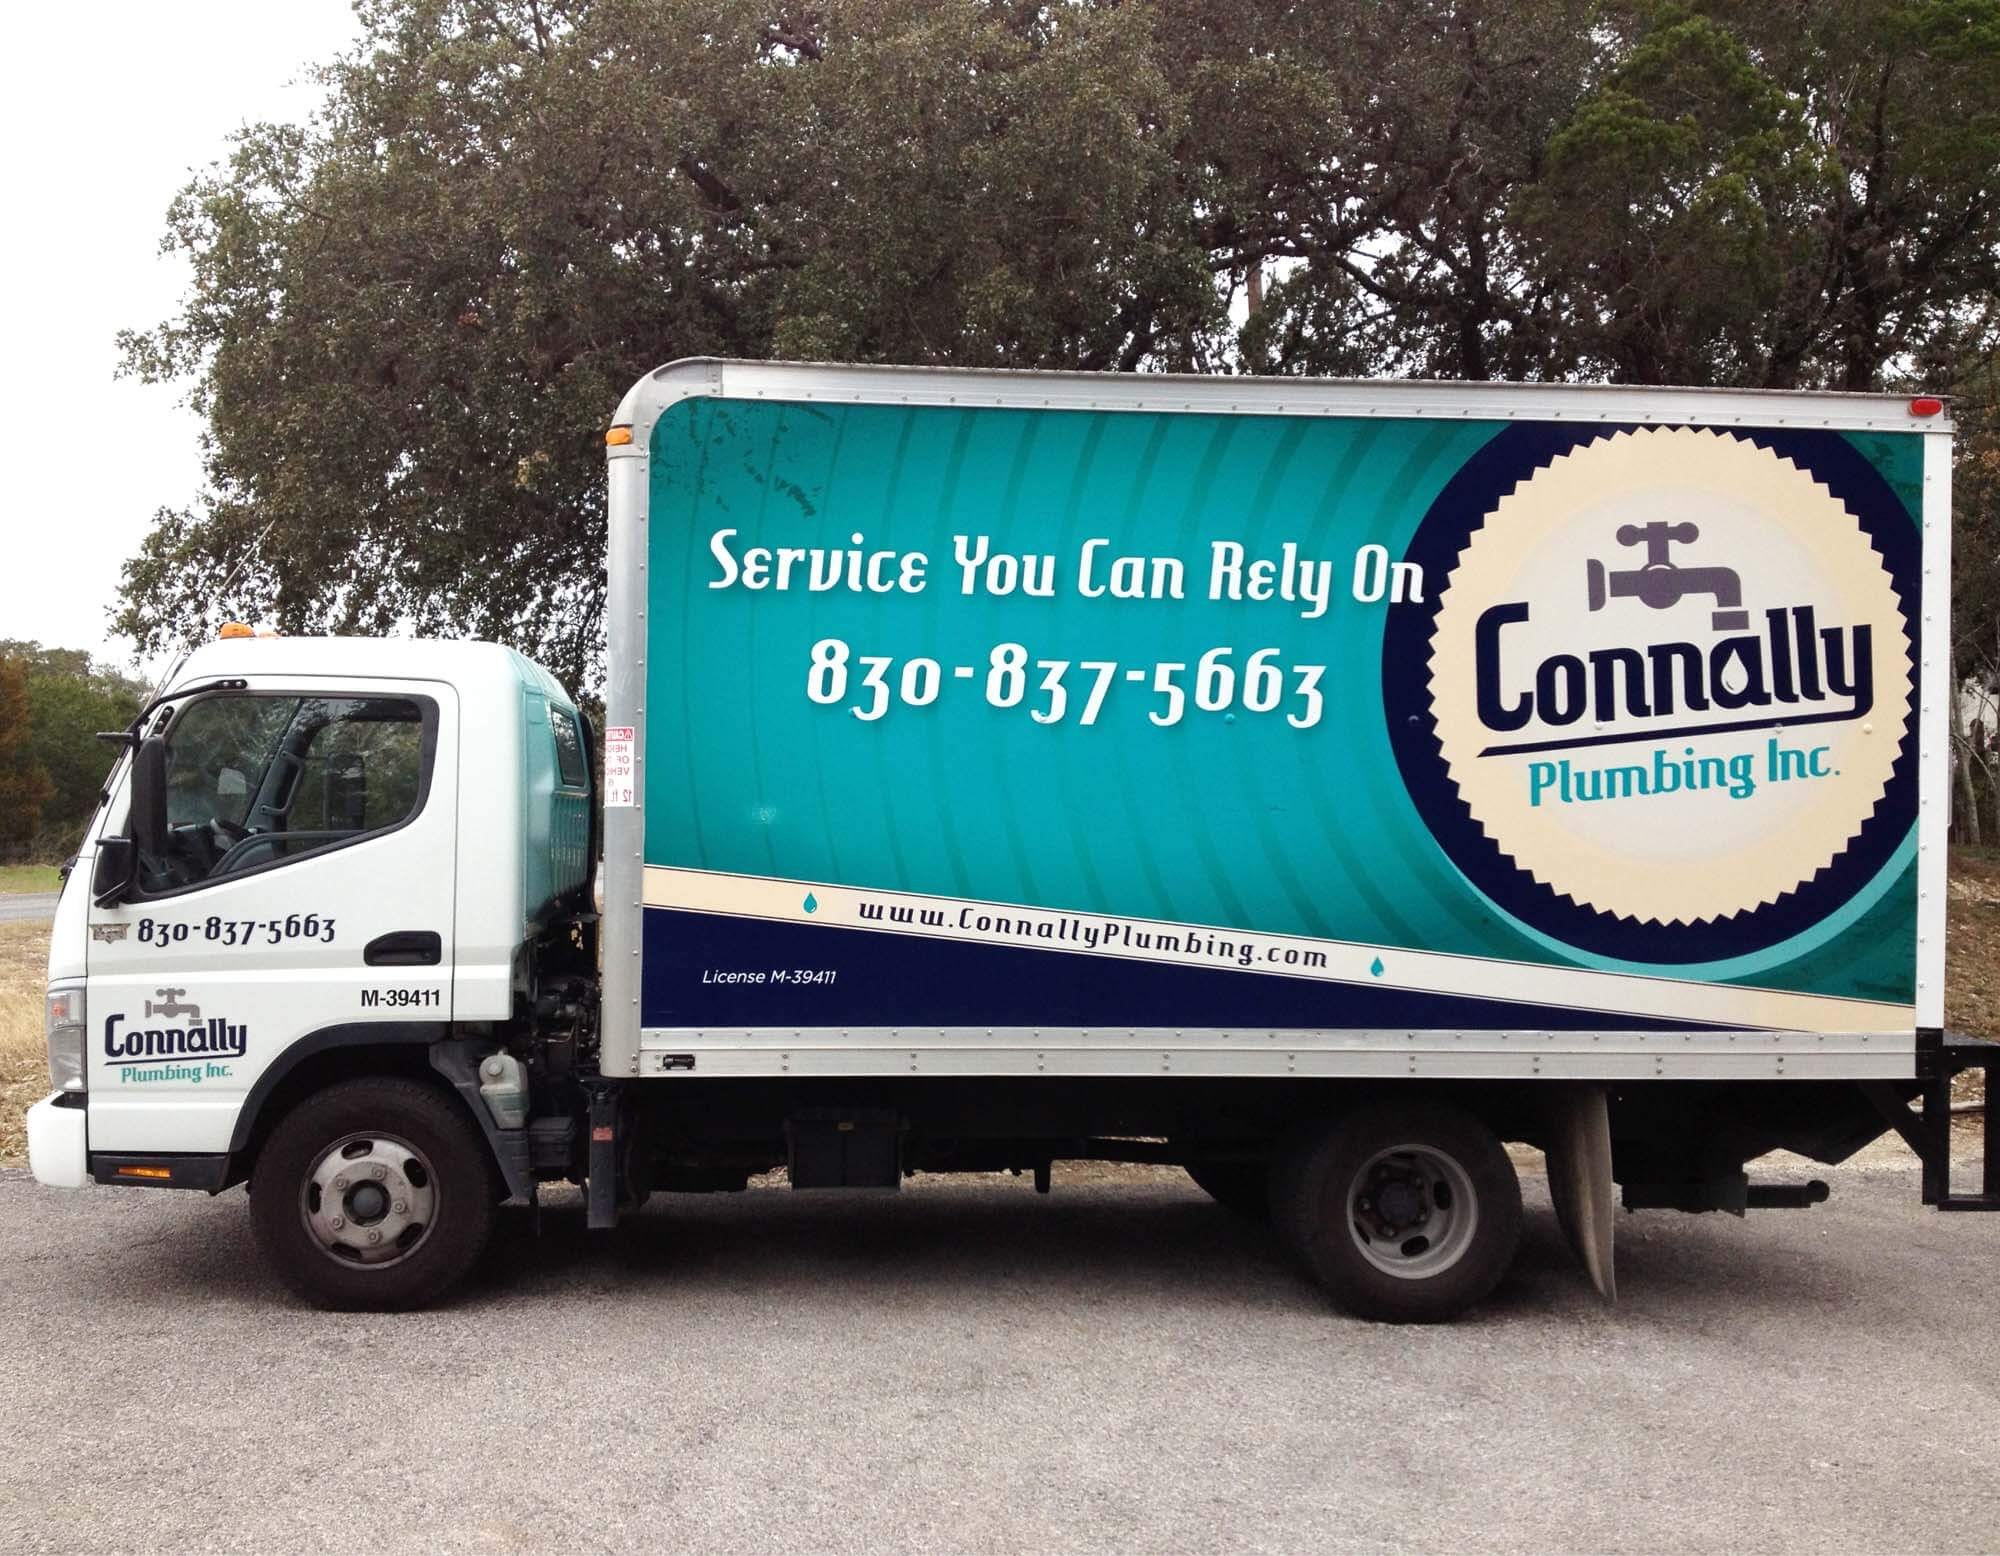 Connally Plumbing Vehicle Wrap